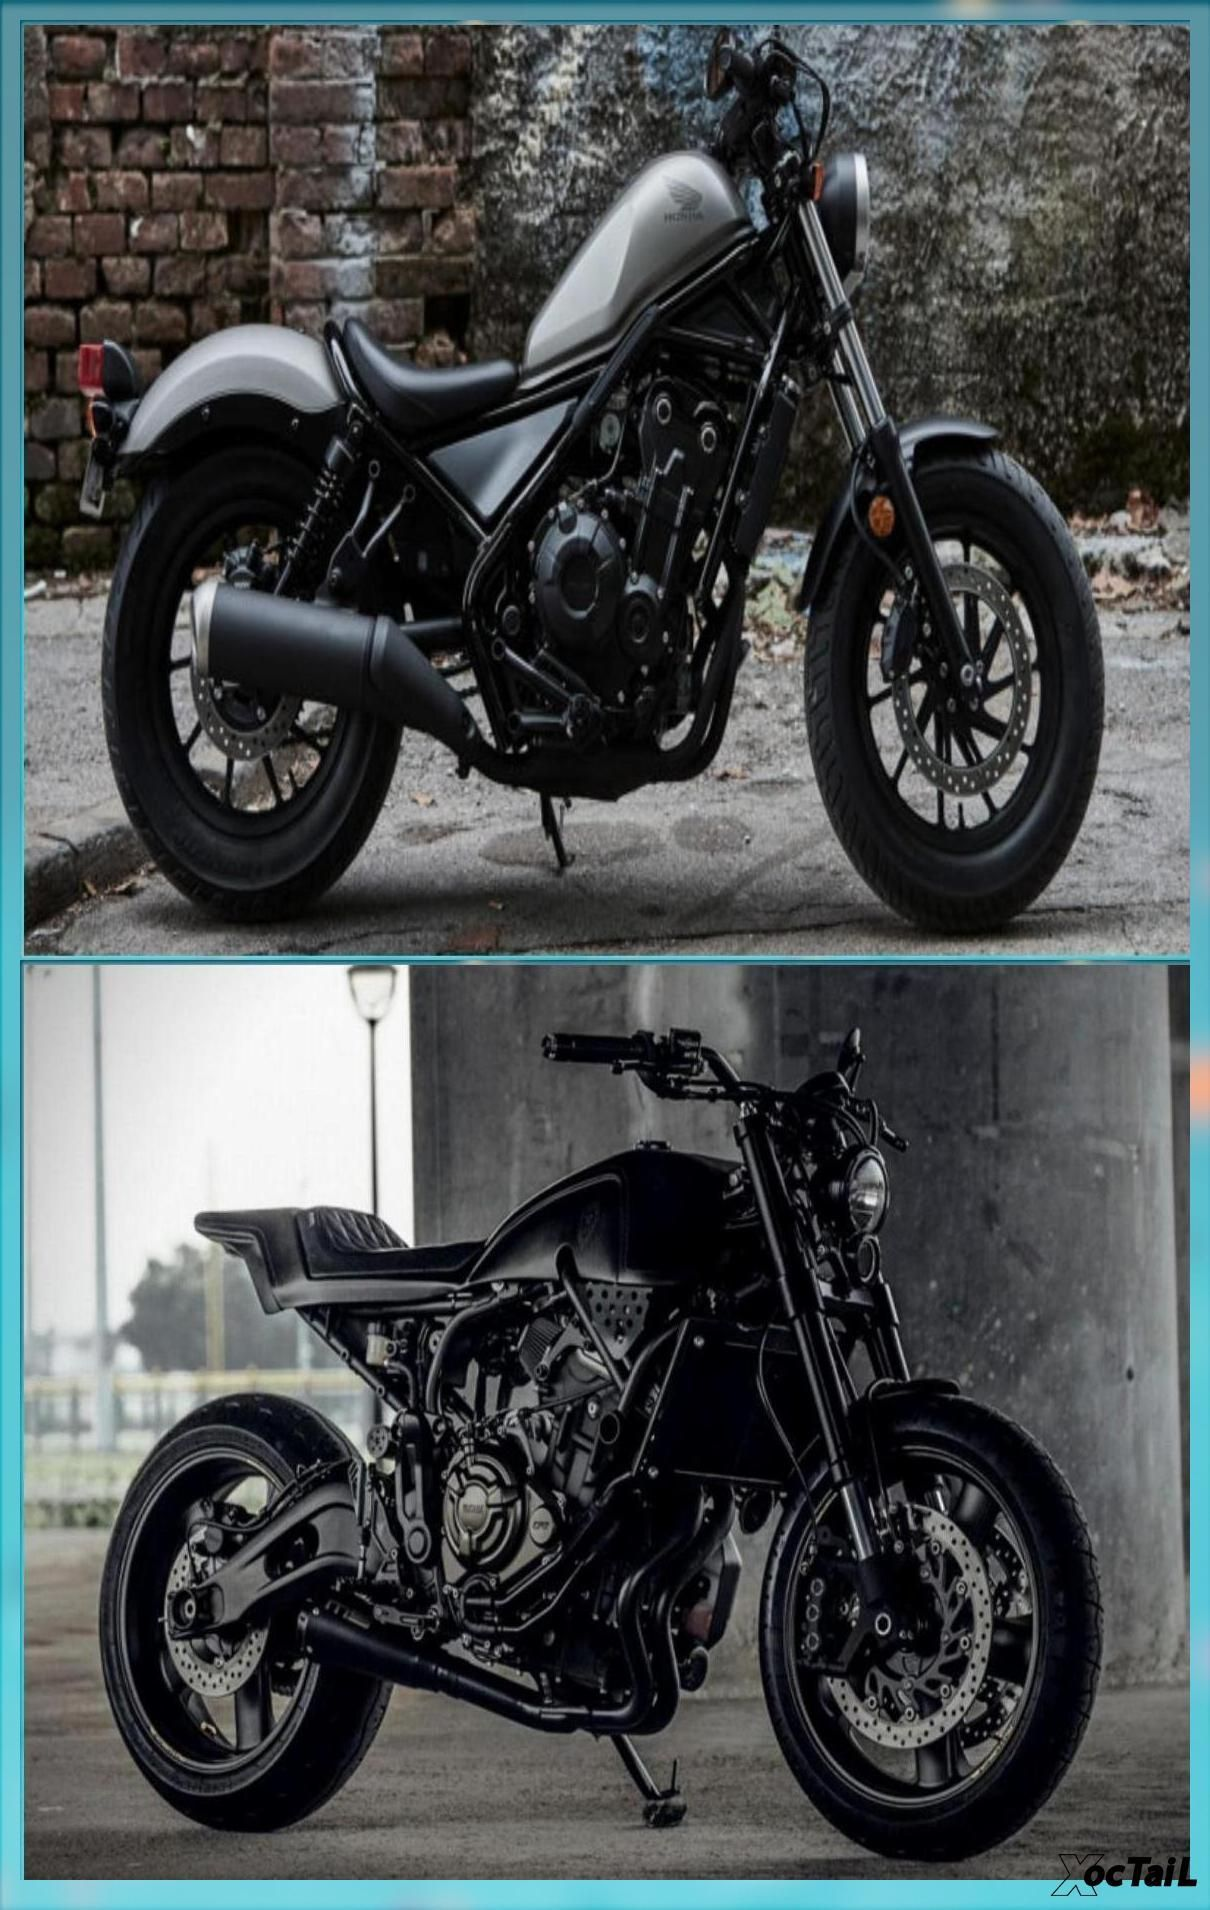 The 10 Best Cruiser Motorcycles Of All Time Yamaha Xsr700 Custom Motorcycle Ph Cruise In 2020 Best Cruiser Motorcycle Bmw Motorcycle Vintage Cruiser Motorcycle